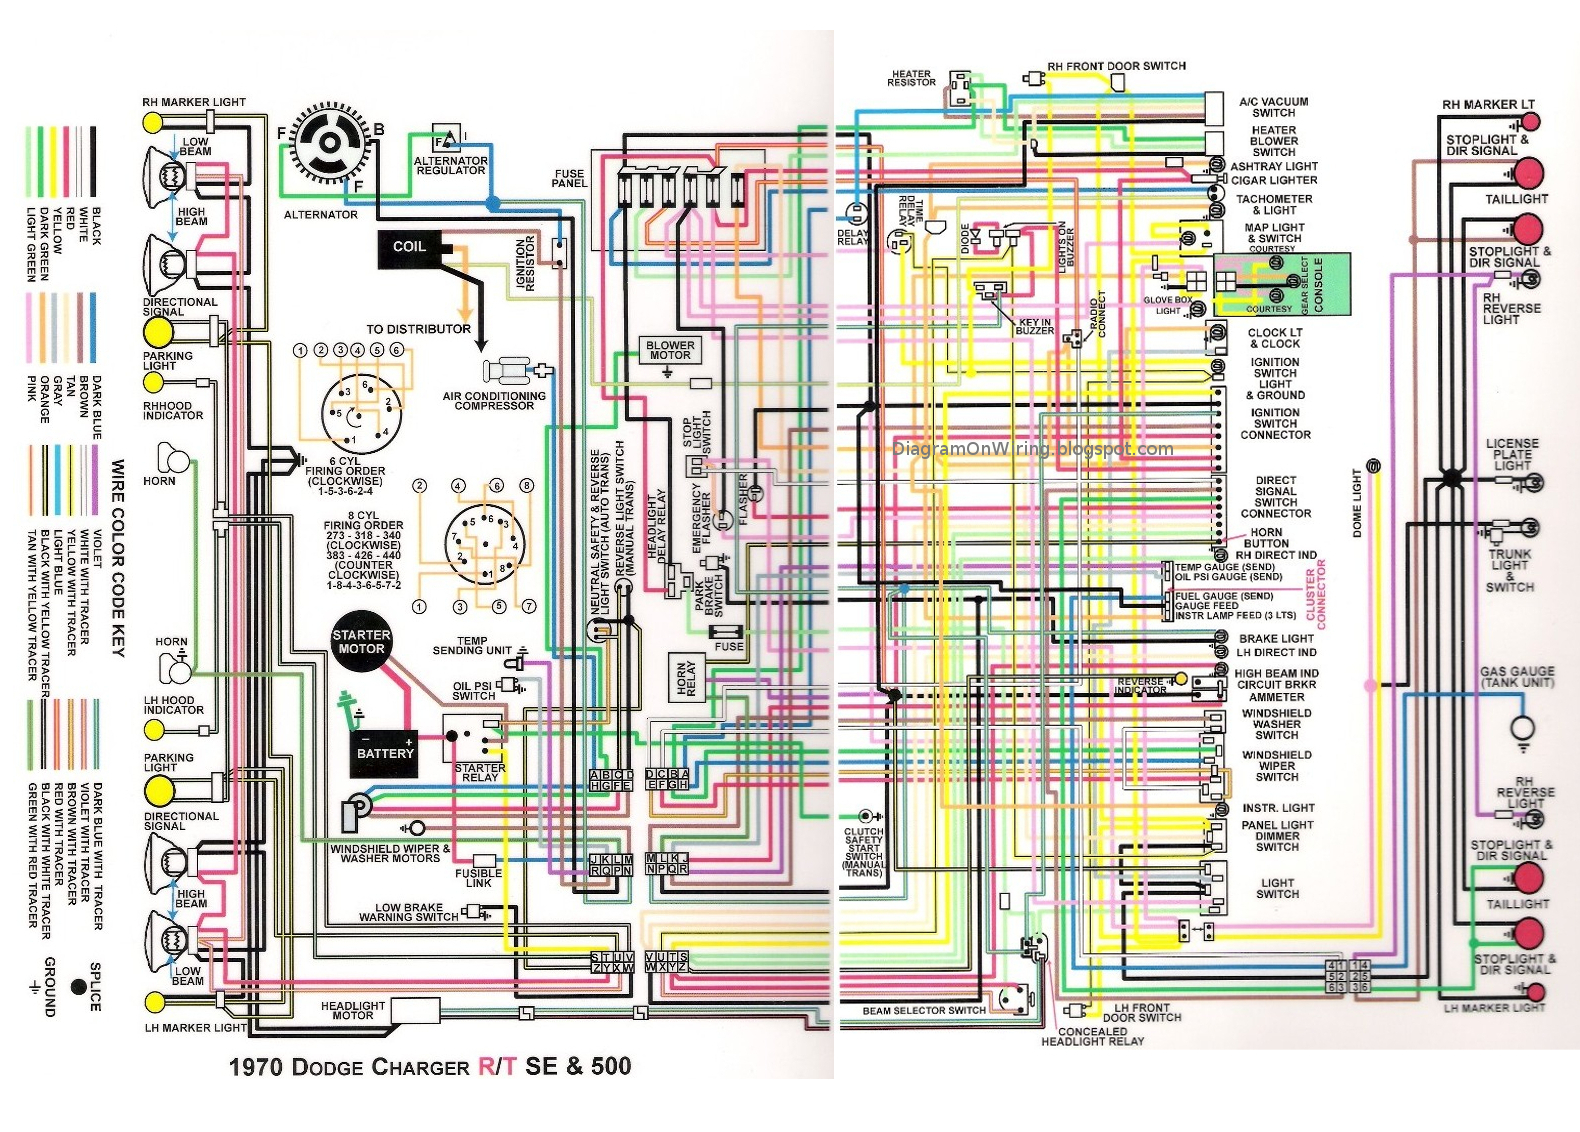 dodge magnum engine diagram wiring library rh 72 csu lichtenhof de 2006 dodge magnum engine 2005 dodge magnum engine hose diagram [ 1580 x 1132 Pixel ]